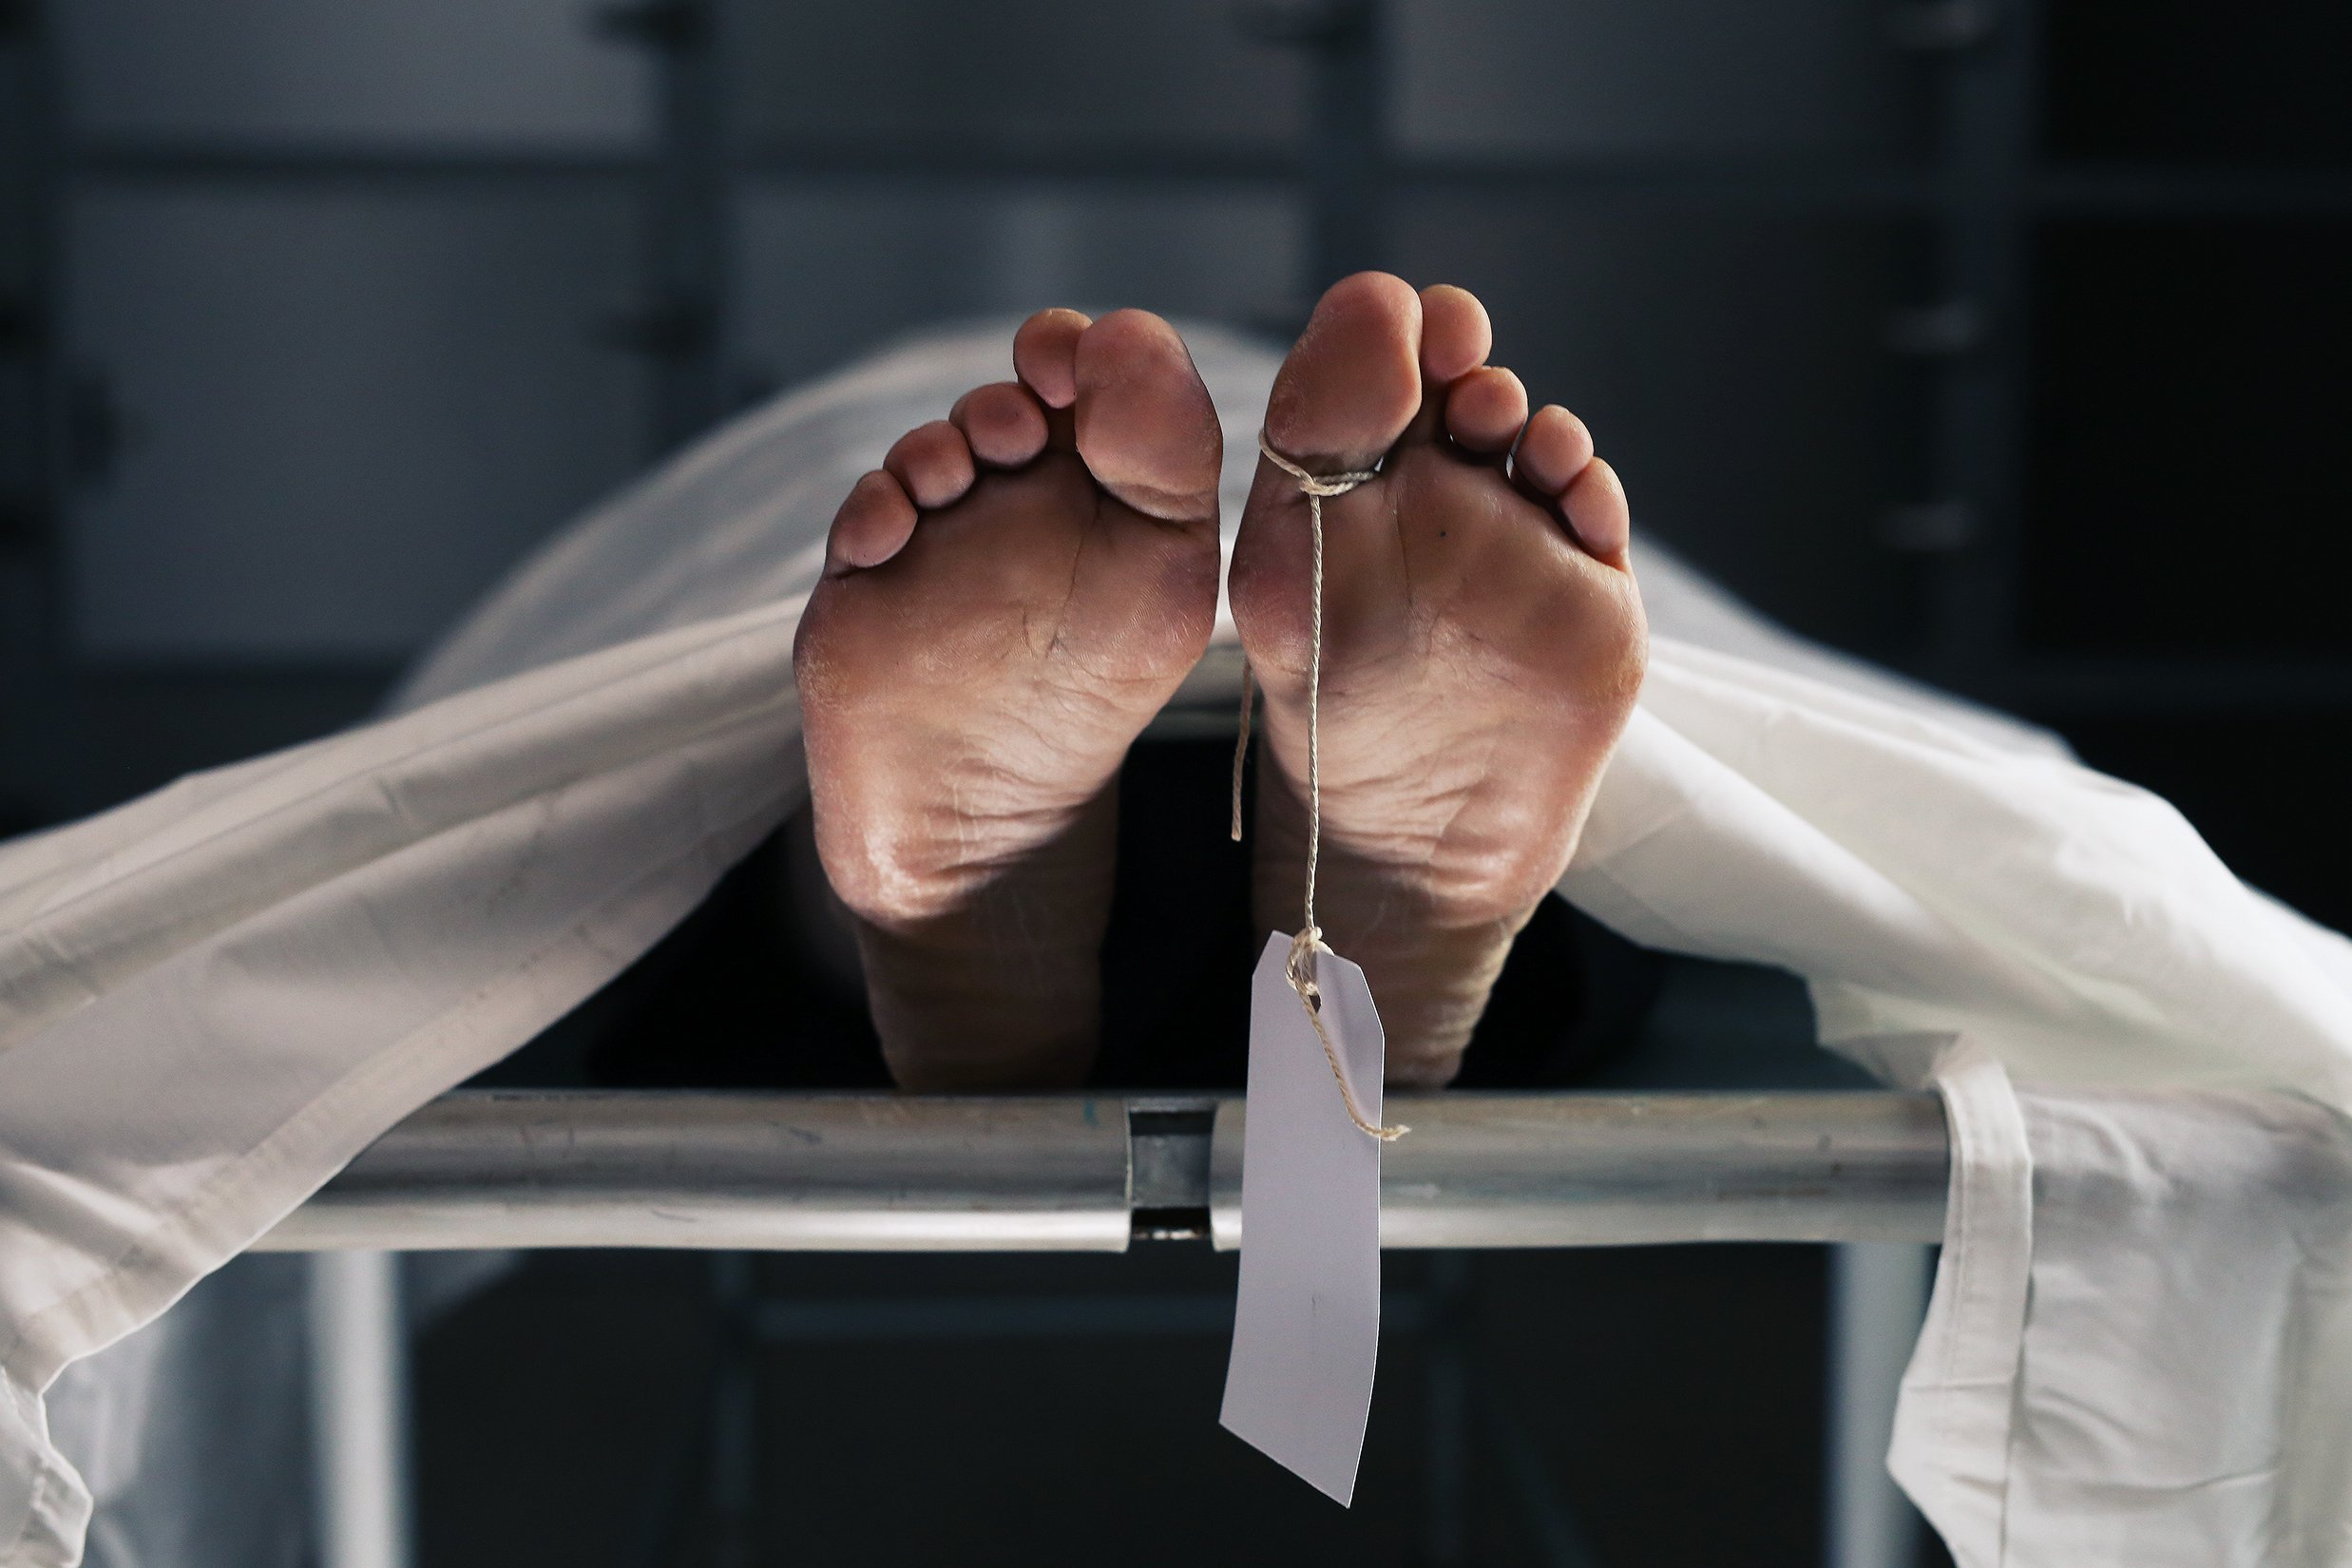 Body on a morgue table with a toe tag. | Source: Shutterstock